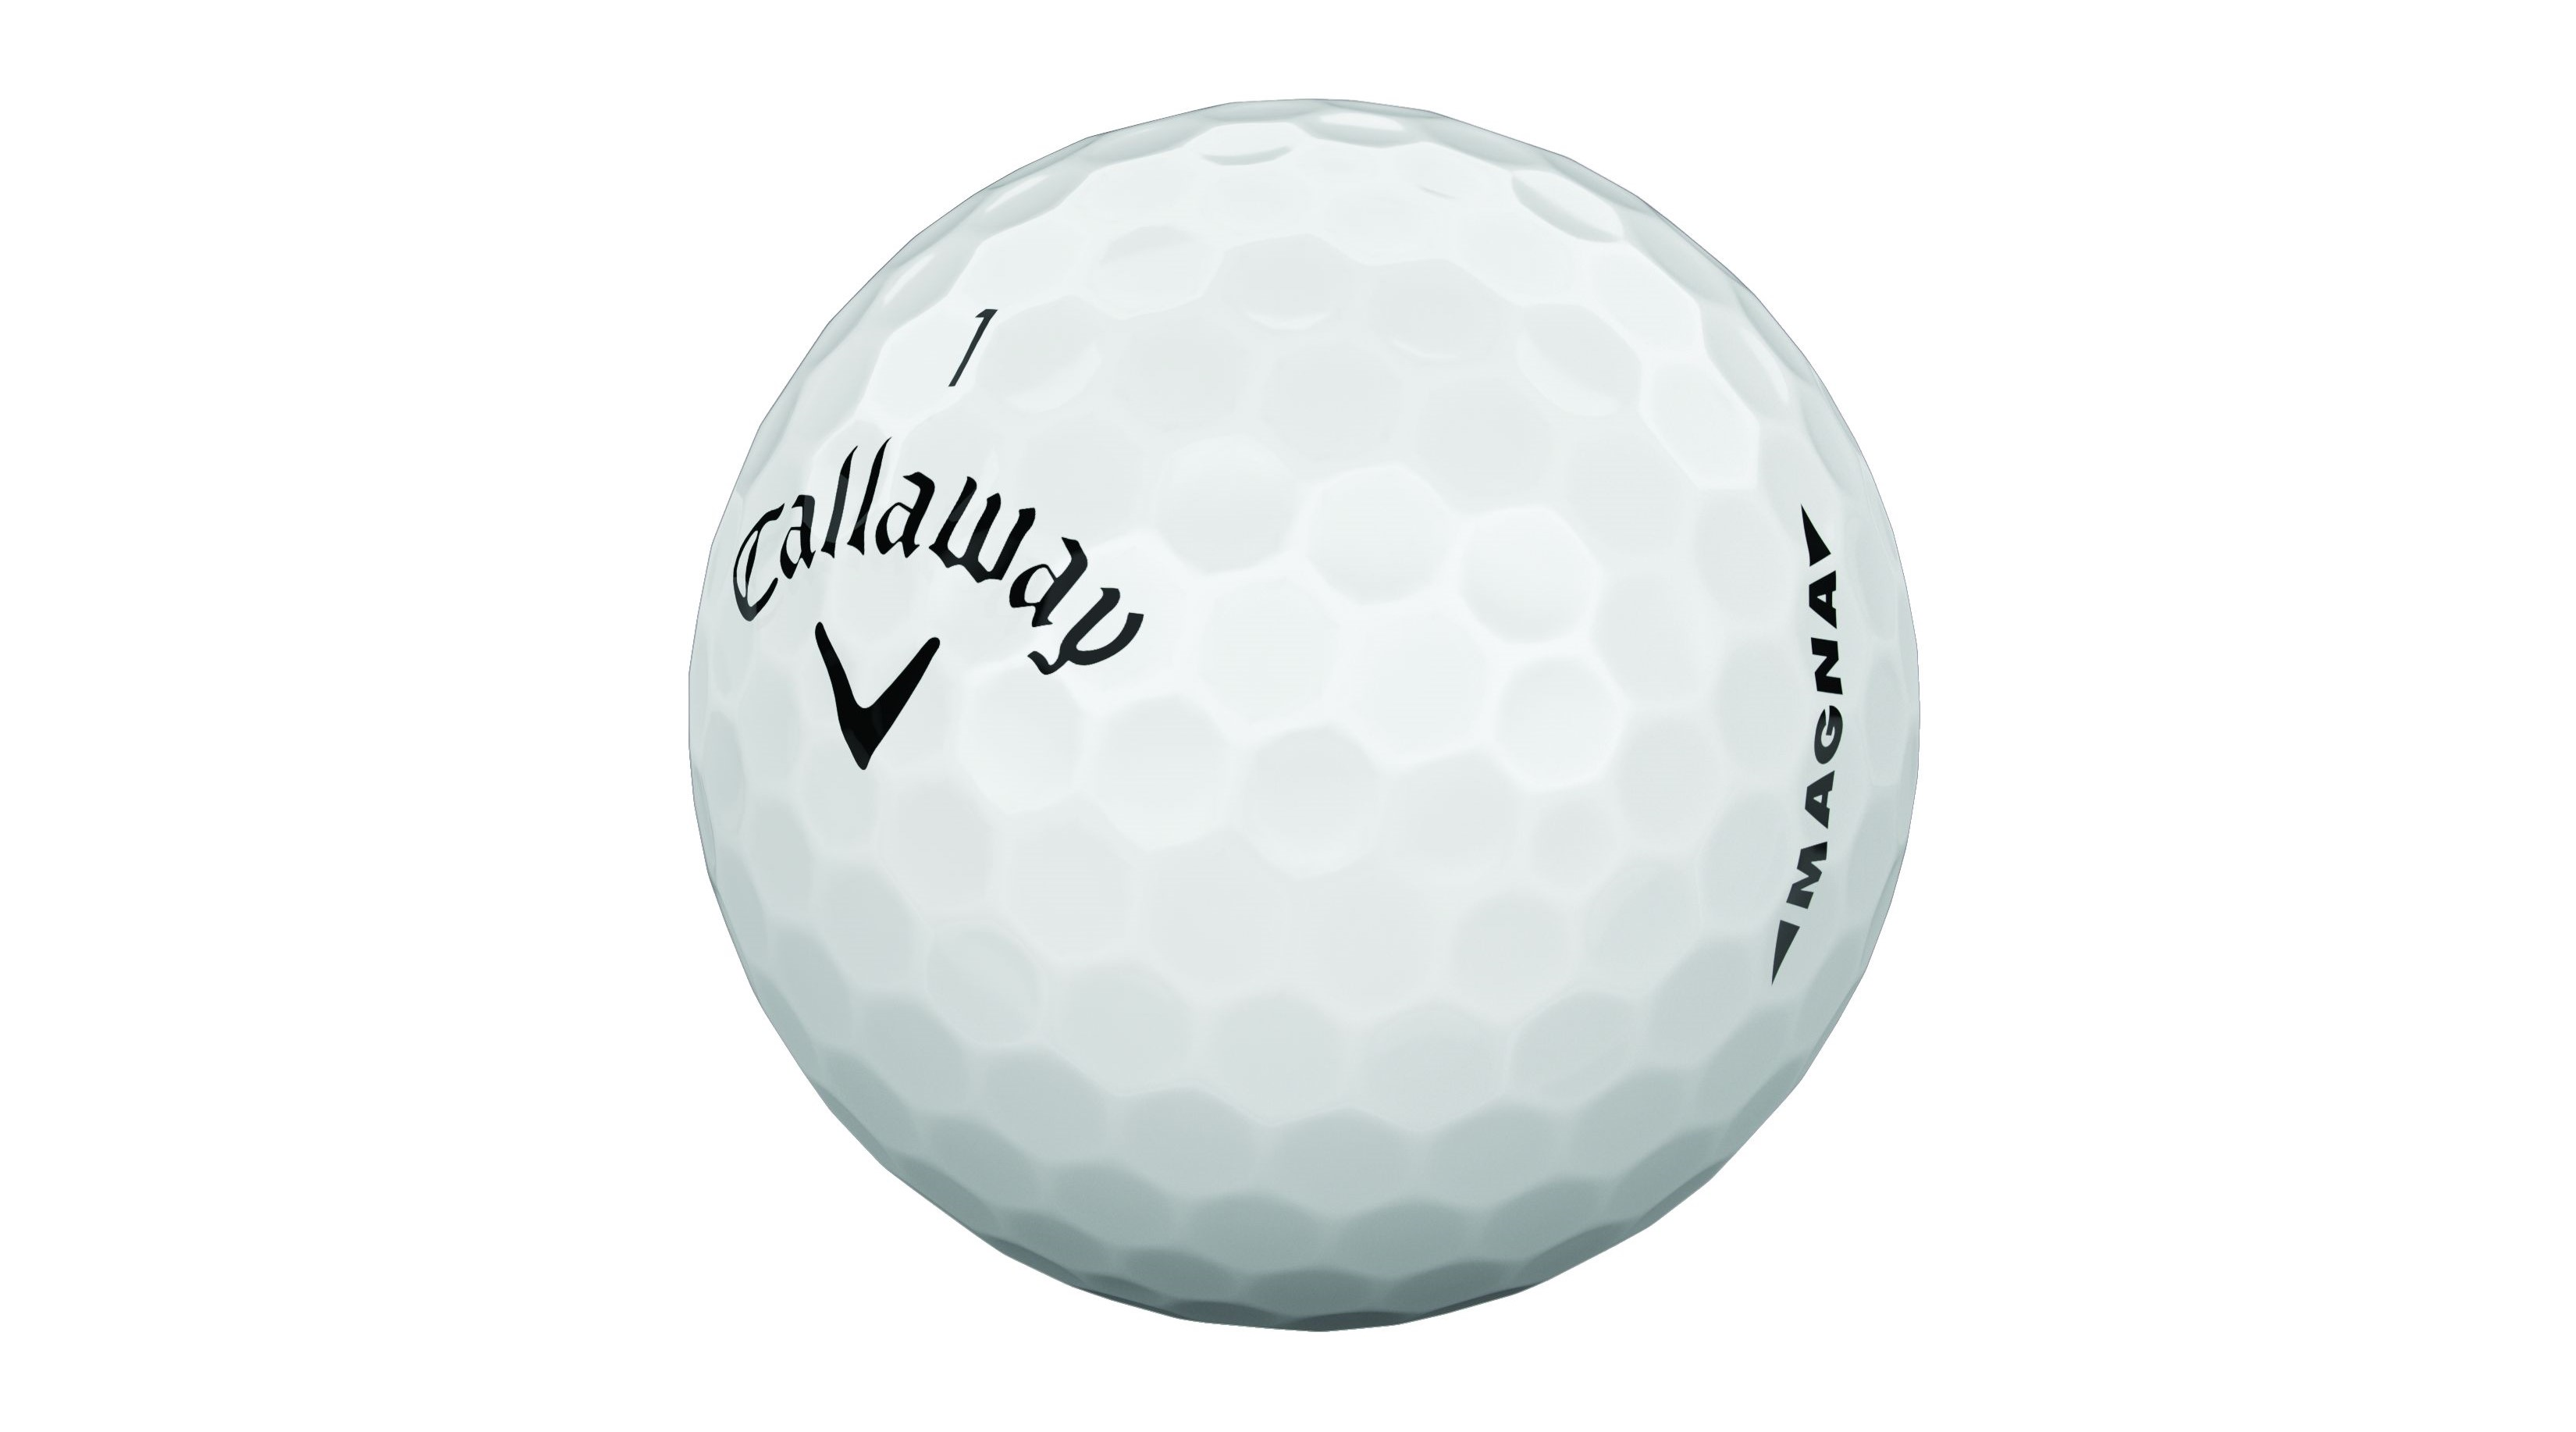 Callaway Supersoft Magma